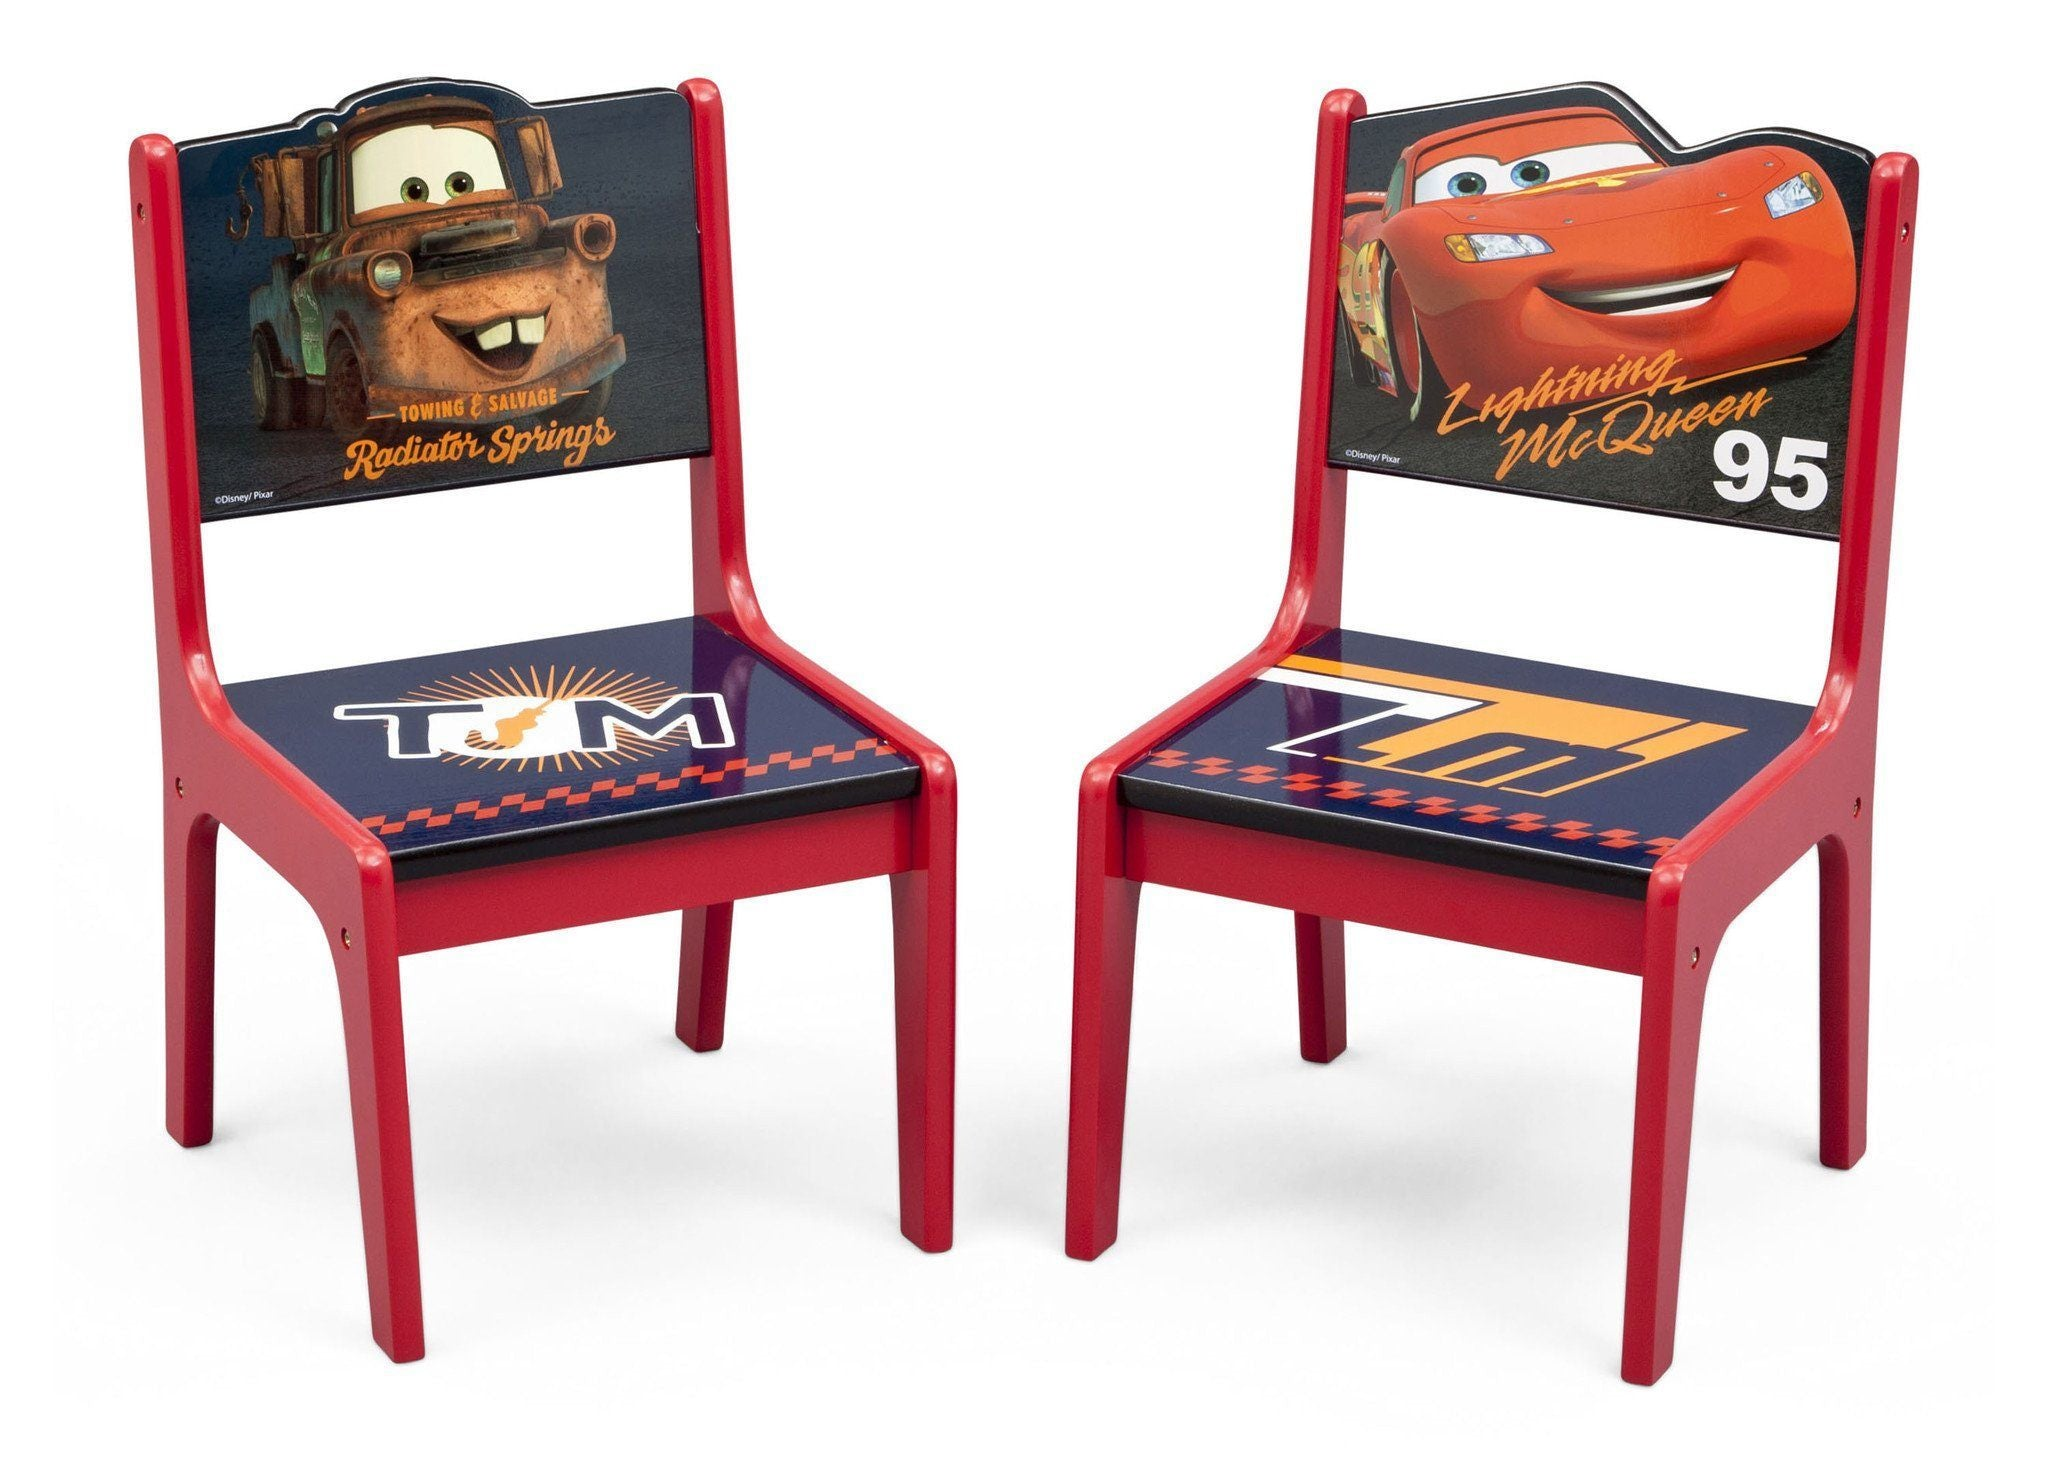 Cars Deluxe Table & Chair with Storage – Delta Children